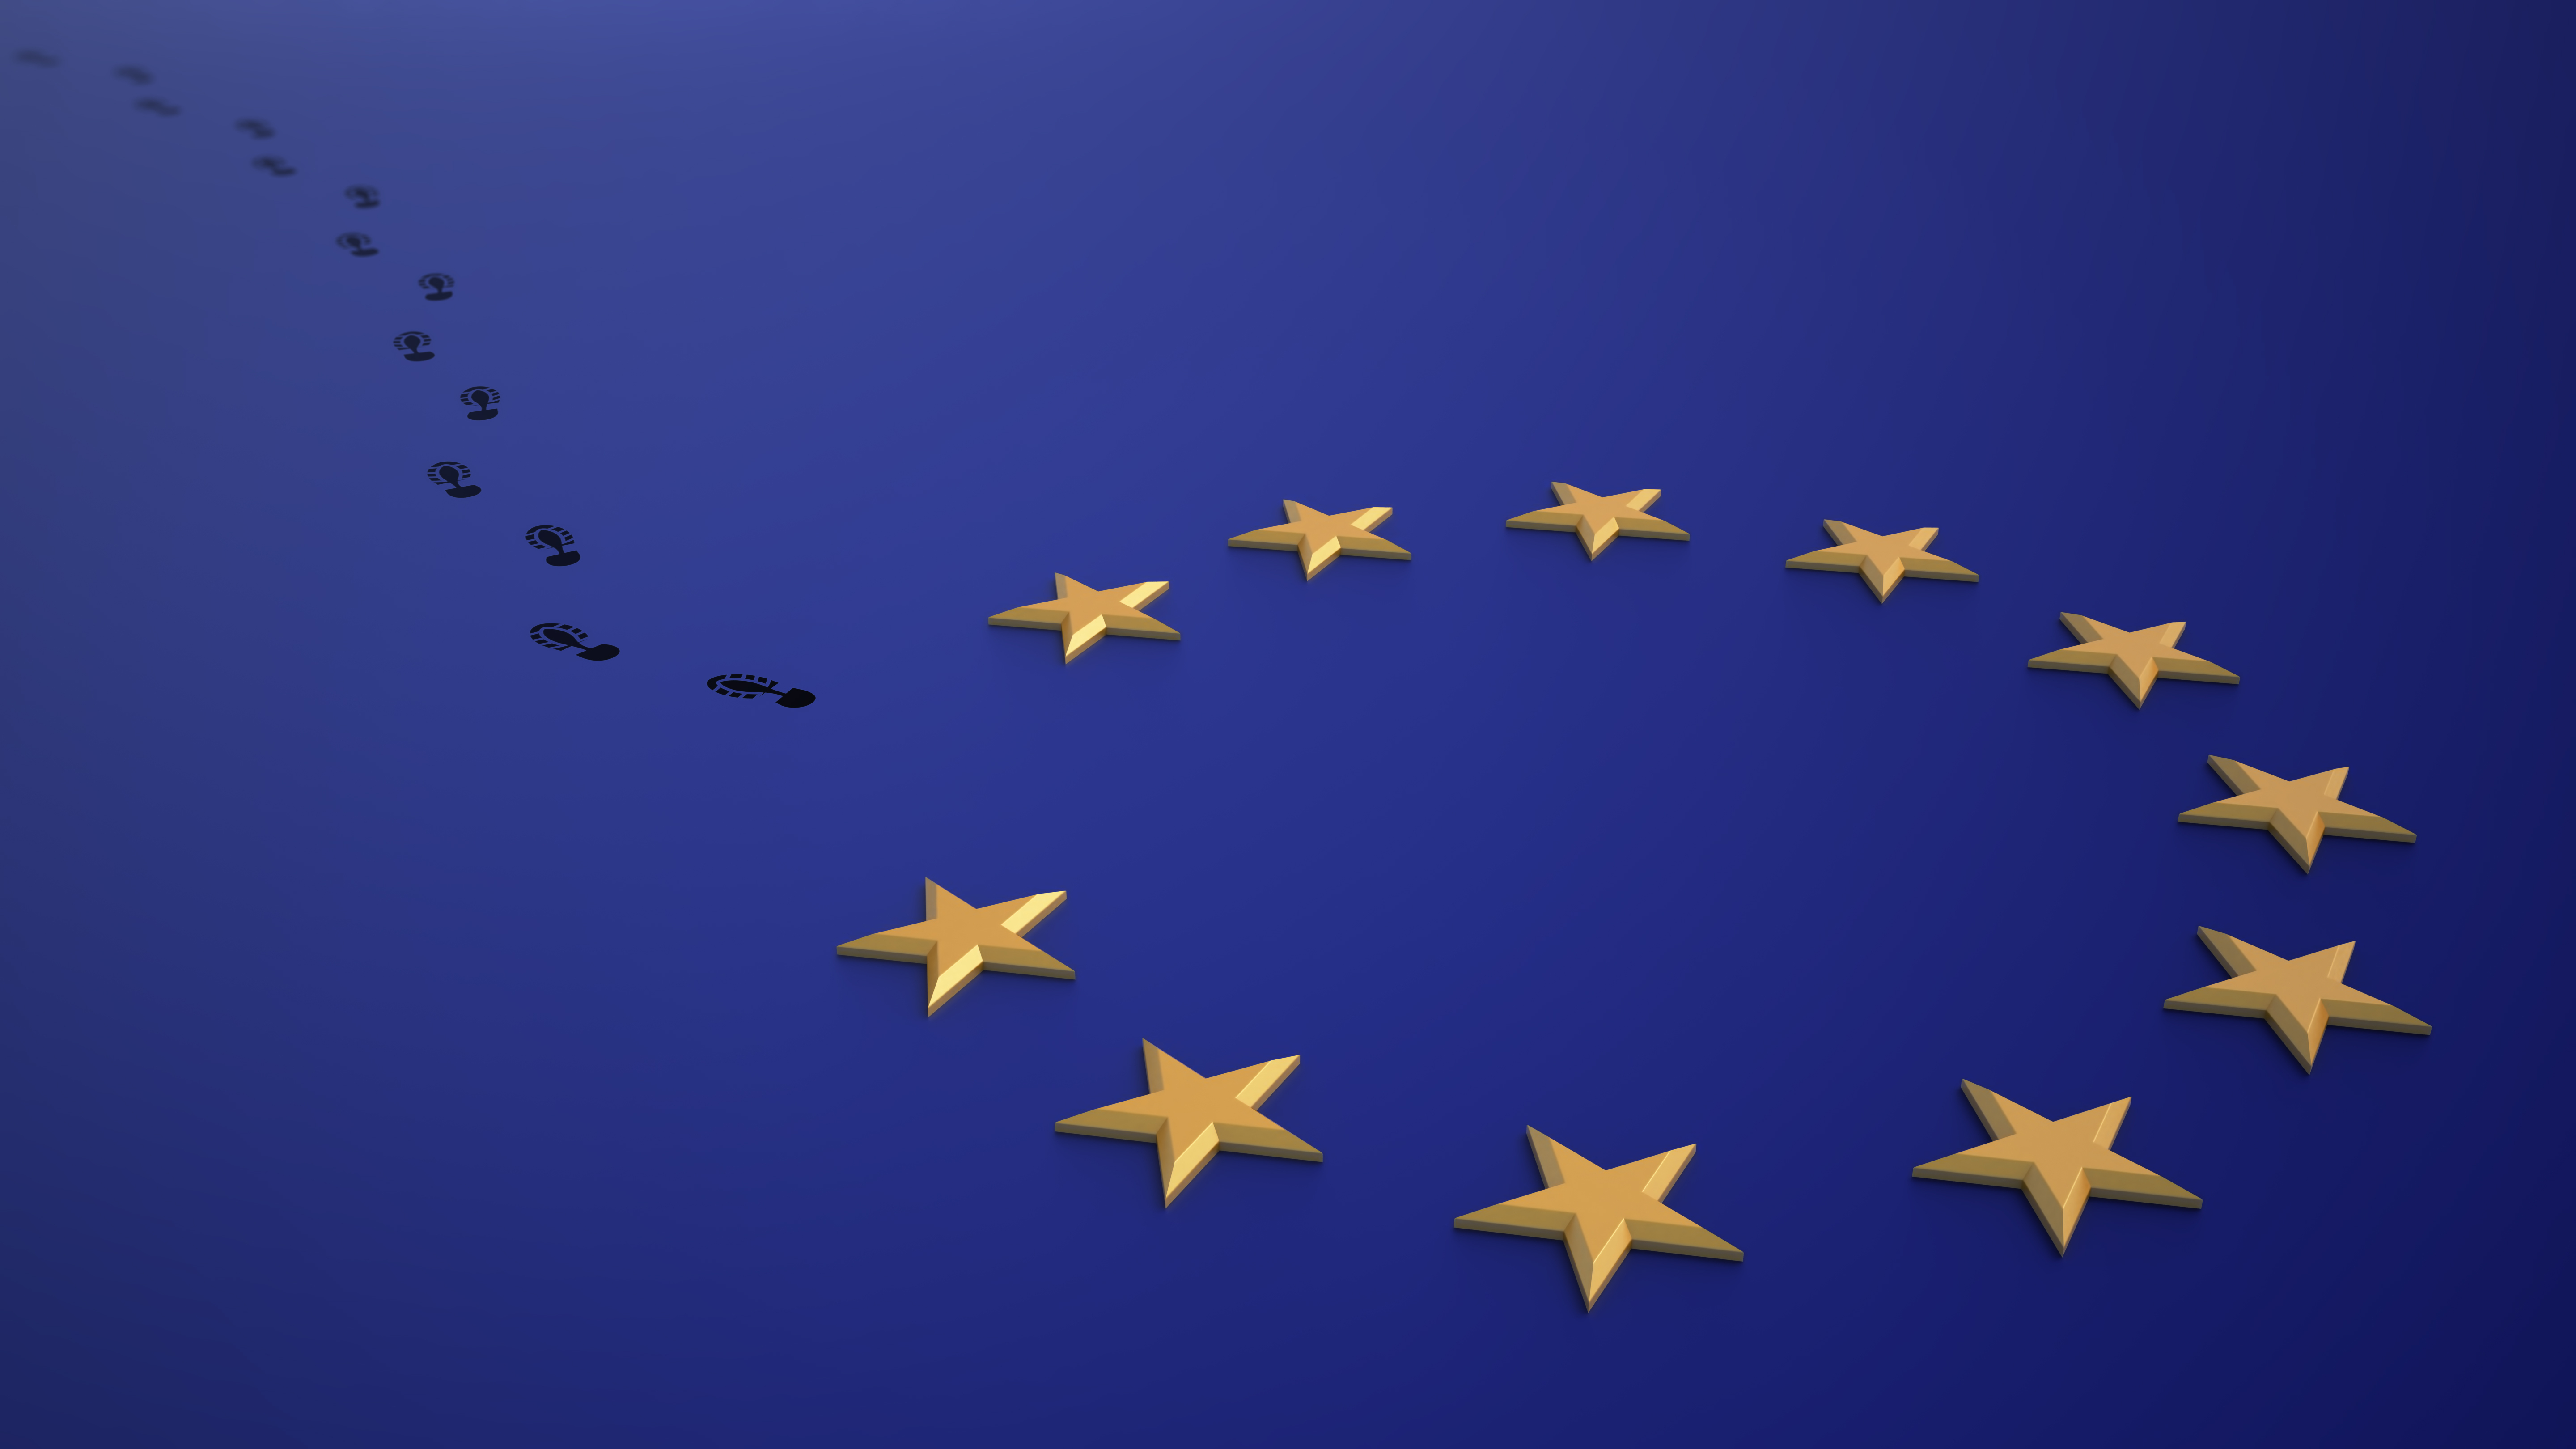 European futures and the fifth human revolution